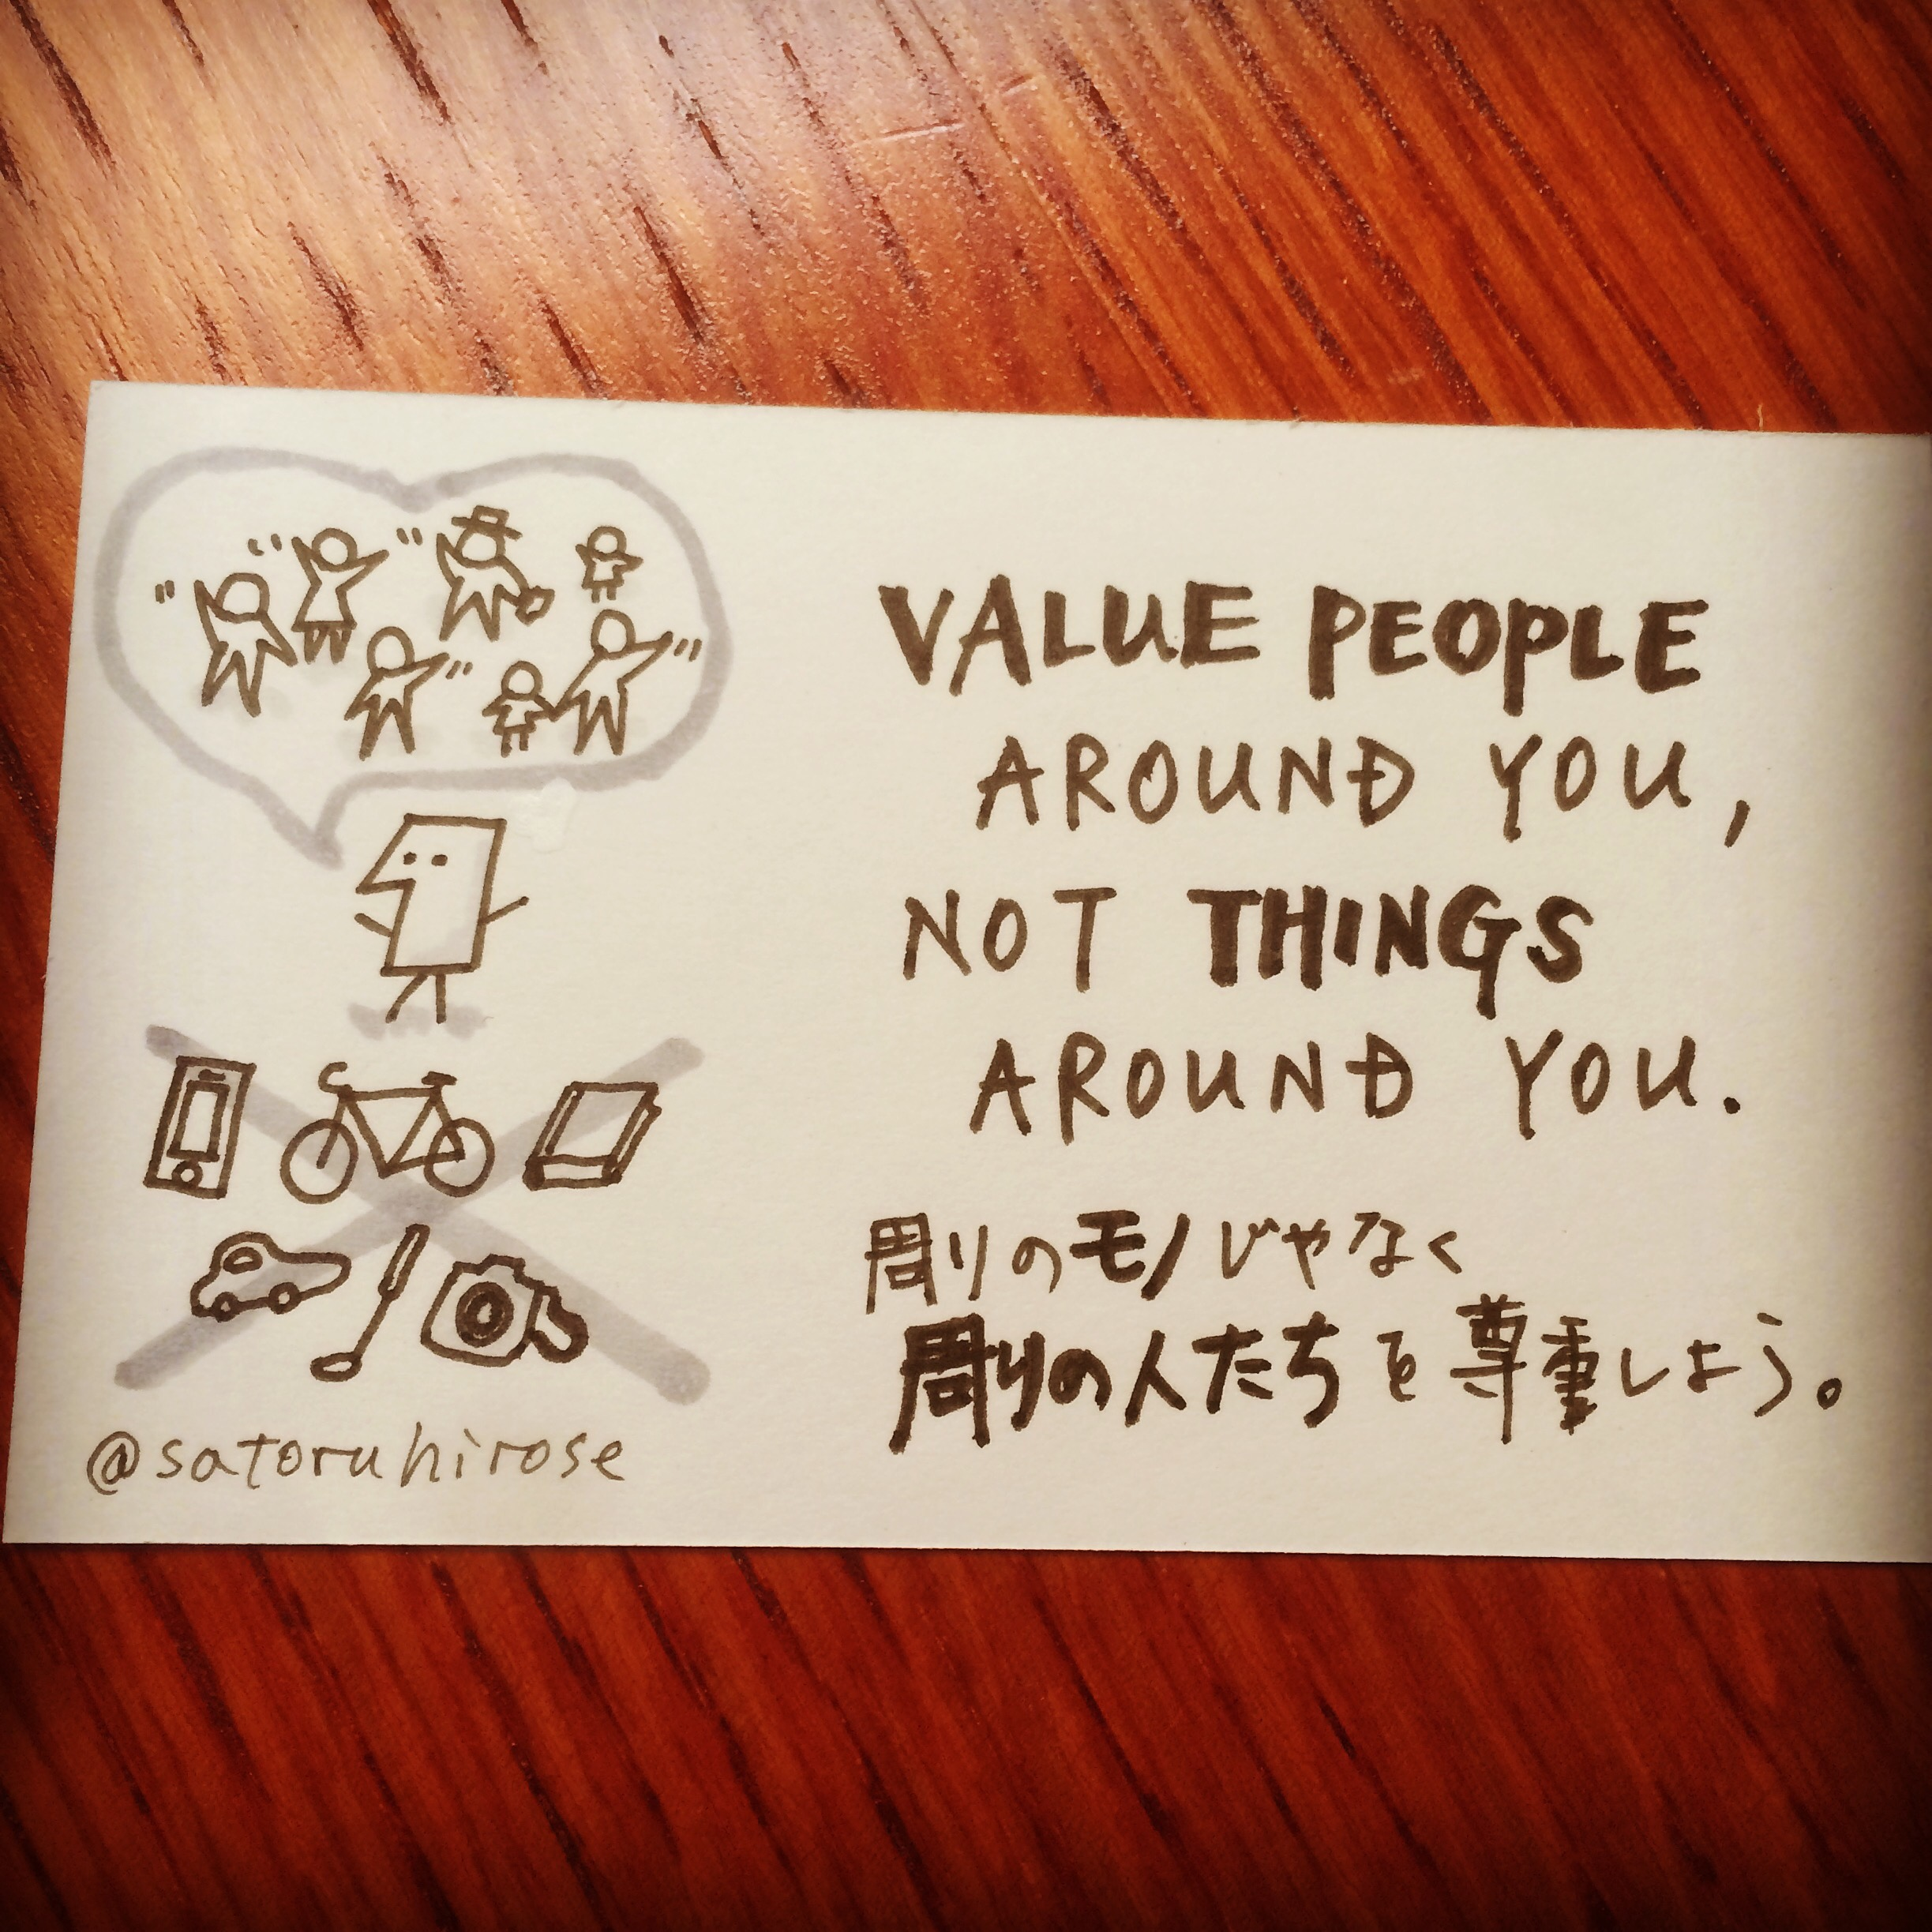 Value people around you, not things around you.